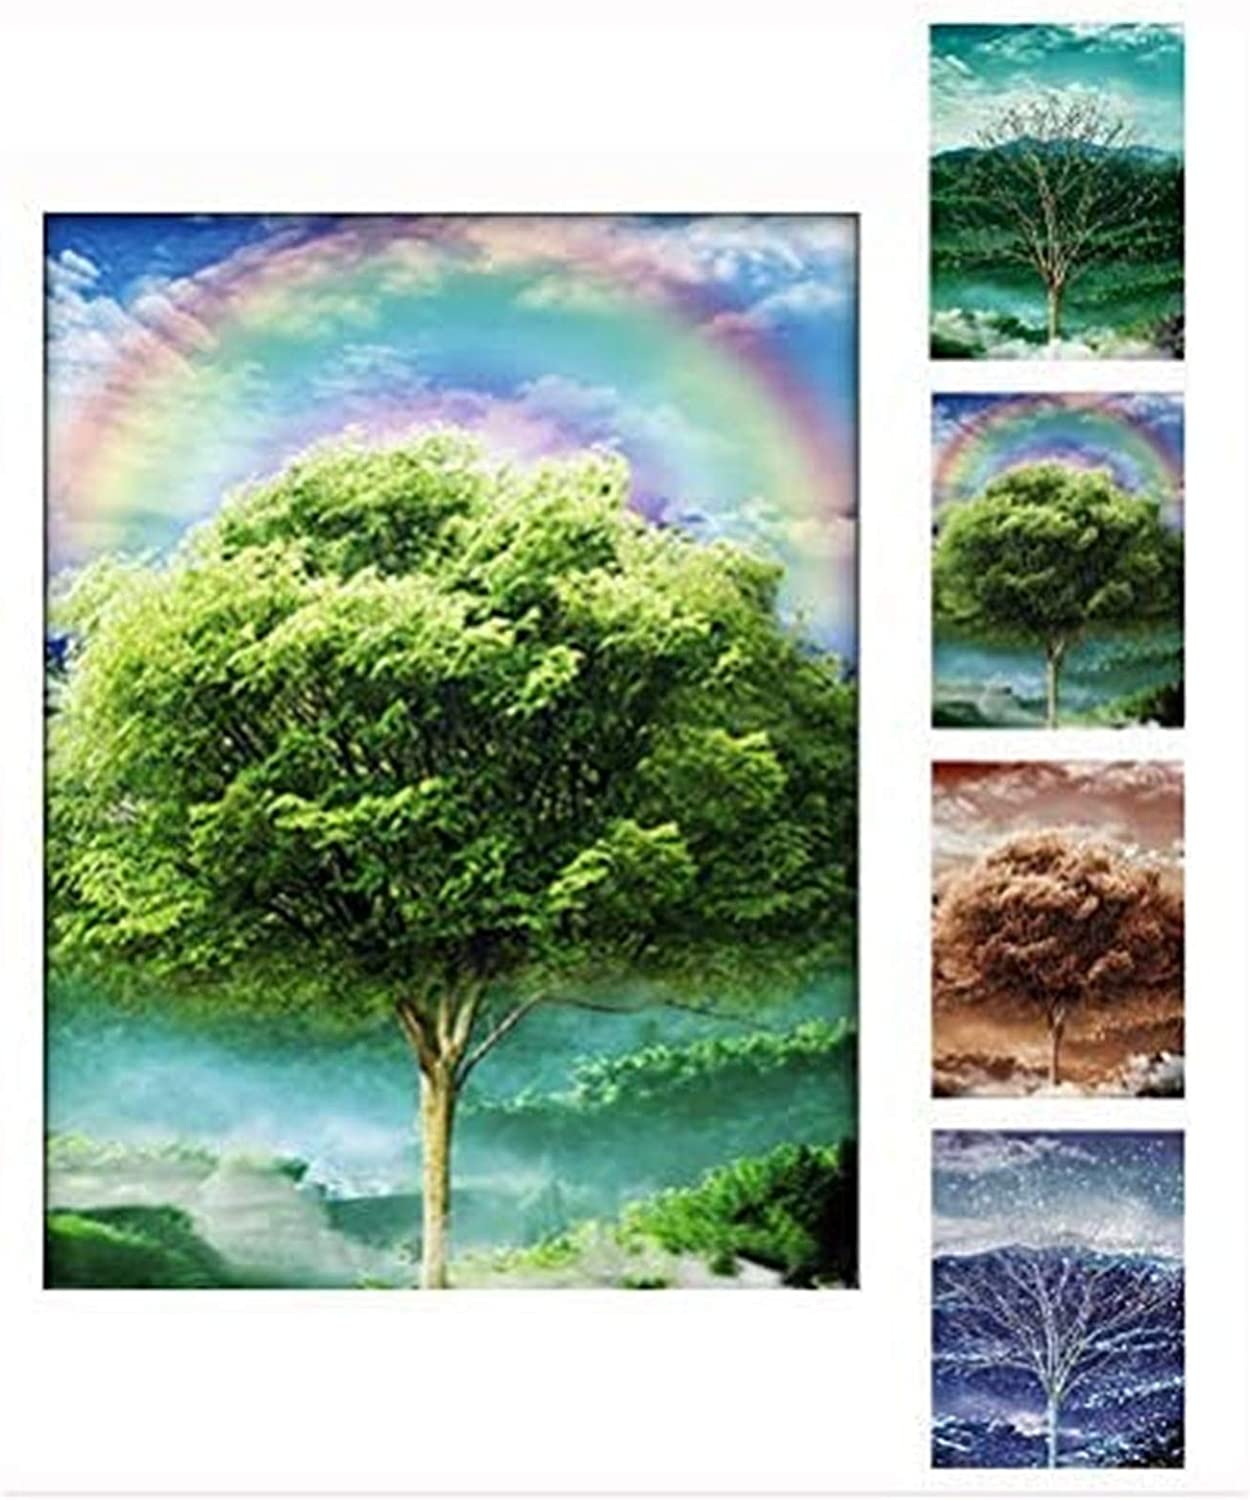 3D Four Seasons Tree Picture, Beautiful Nature Scene of Changing Four Seasons Spring Summer Fall Winter Scenery Mural, Optical Illusion Flipping Images and Holographic Pictures (4 Images in 1)